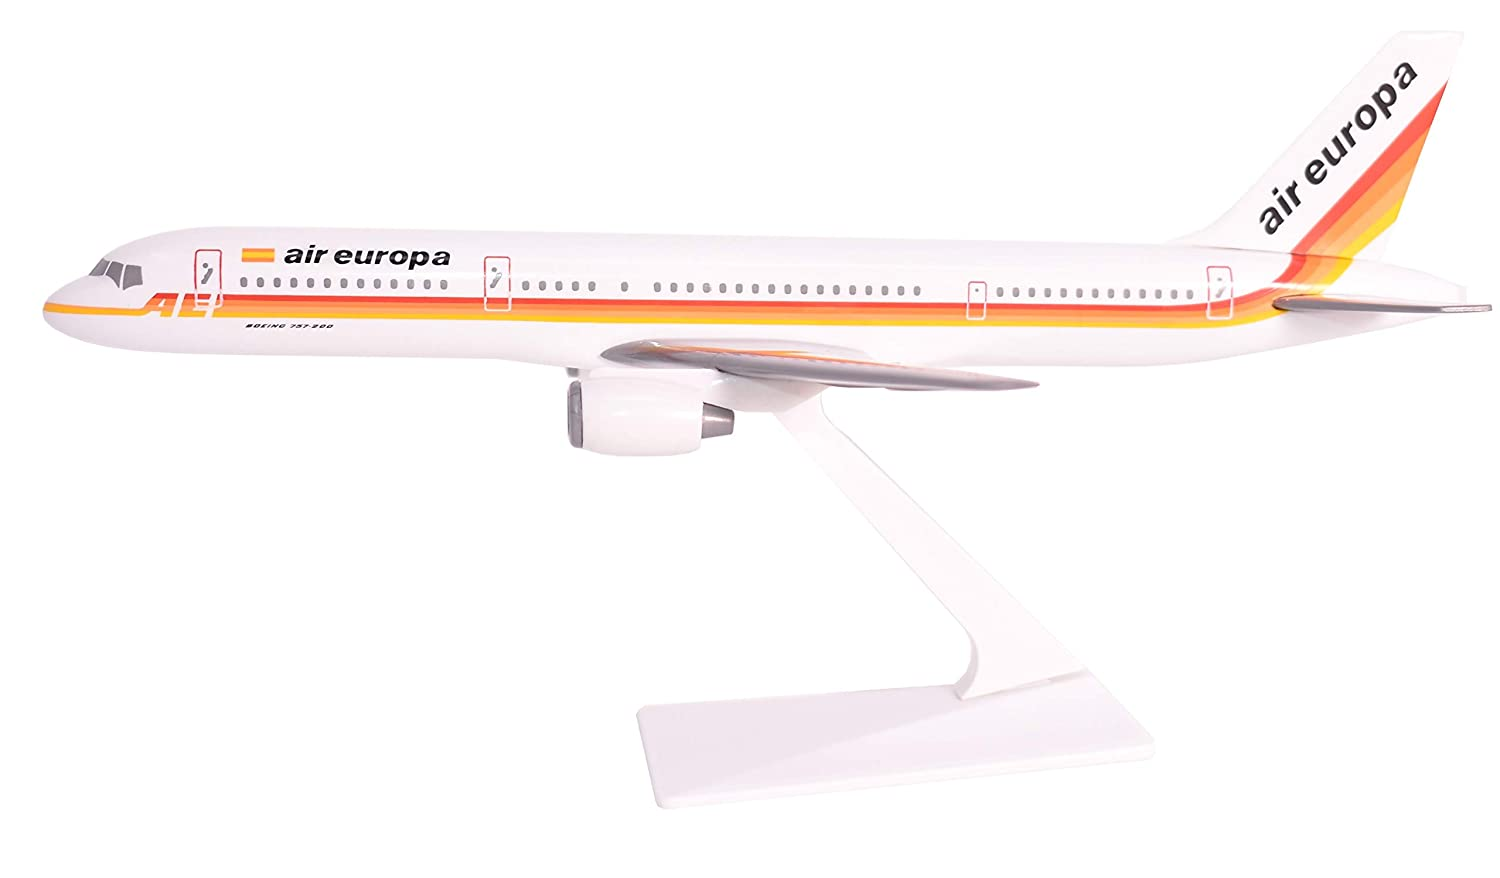 727-200 Airplane Miniature Model Plastic Snap-Fit 1:200 Part# ABO-72720H-002 Federal Express 72-96